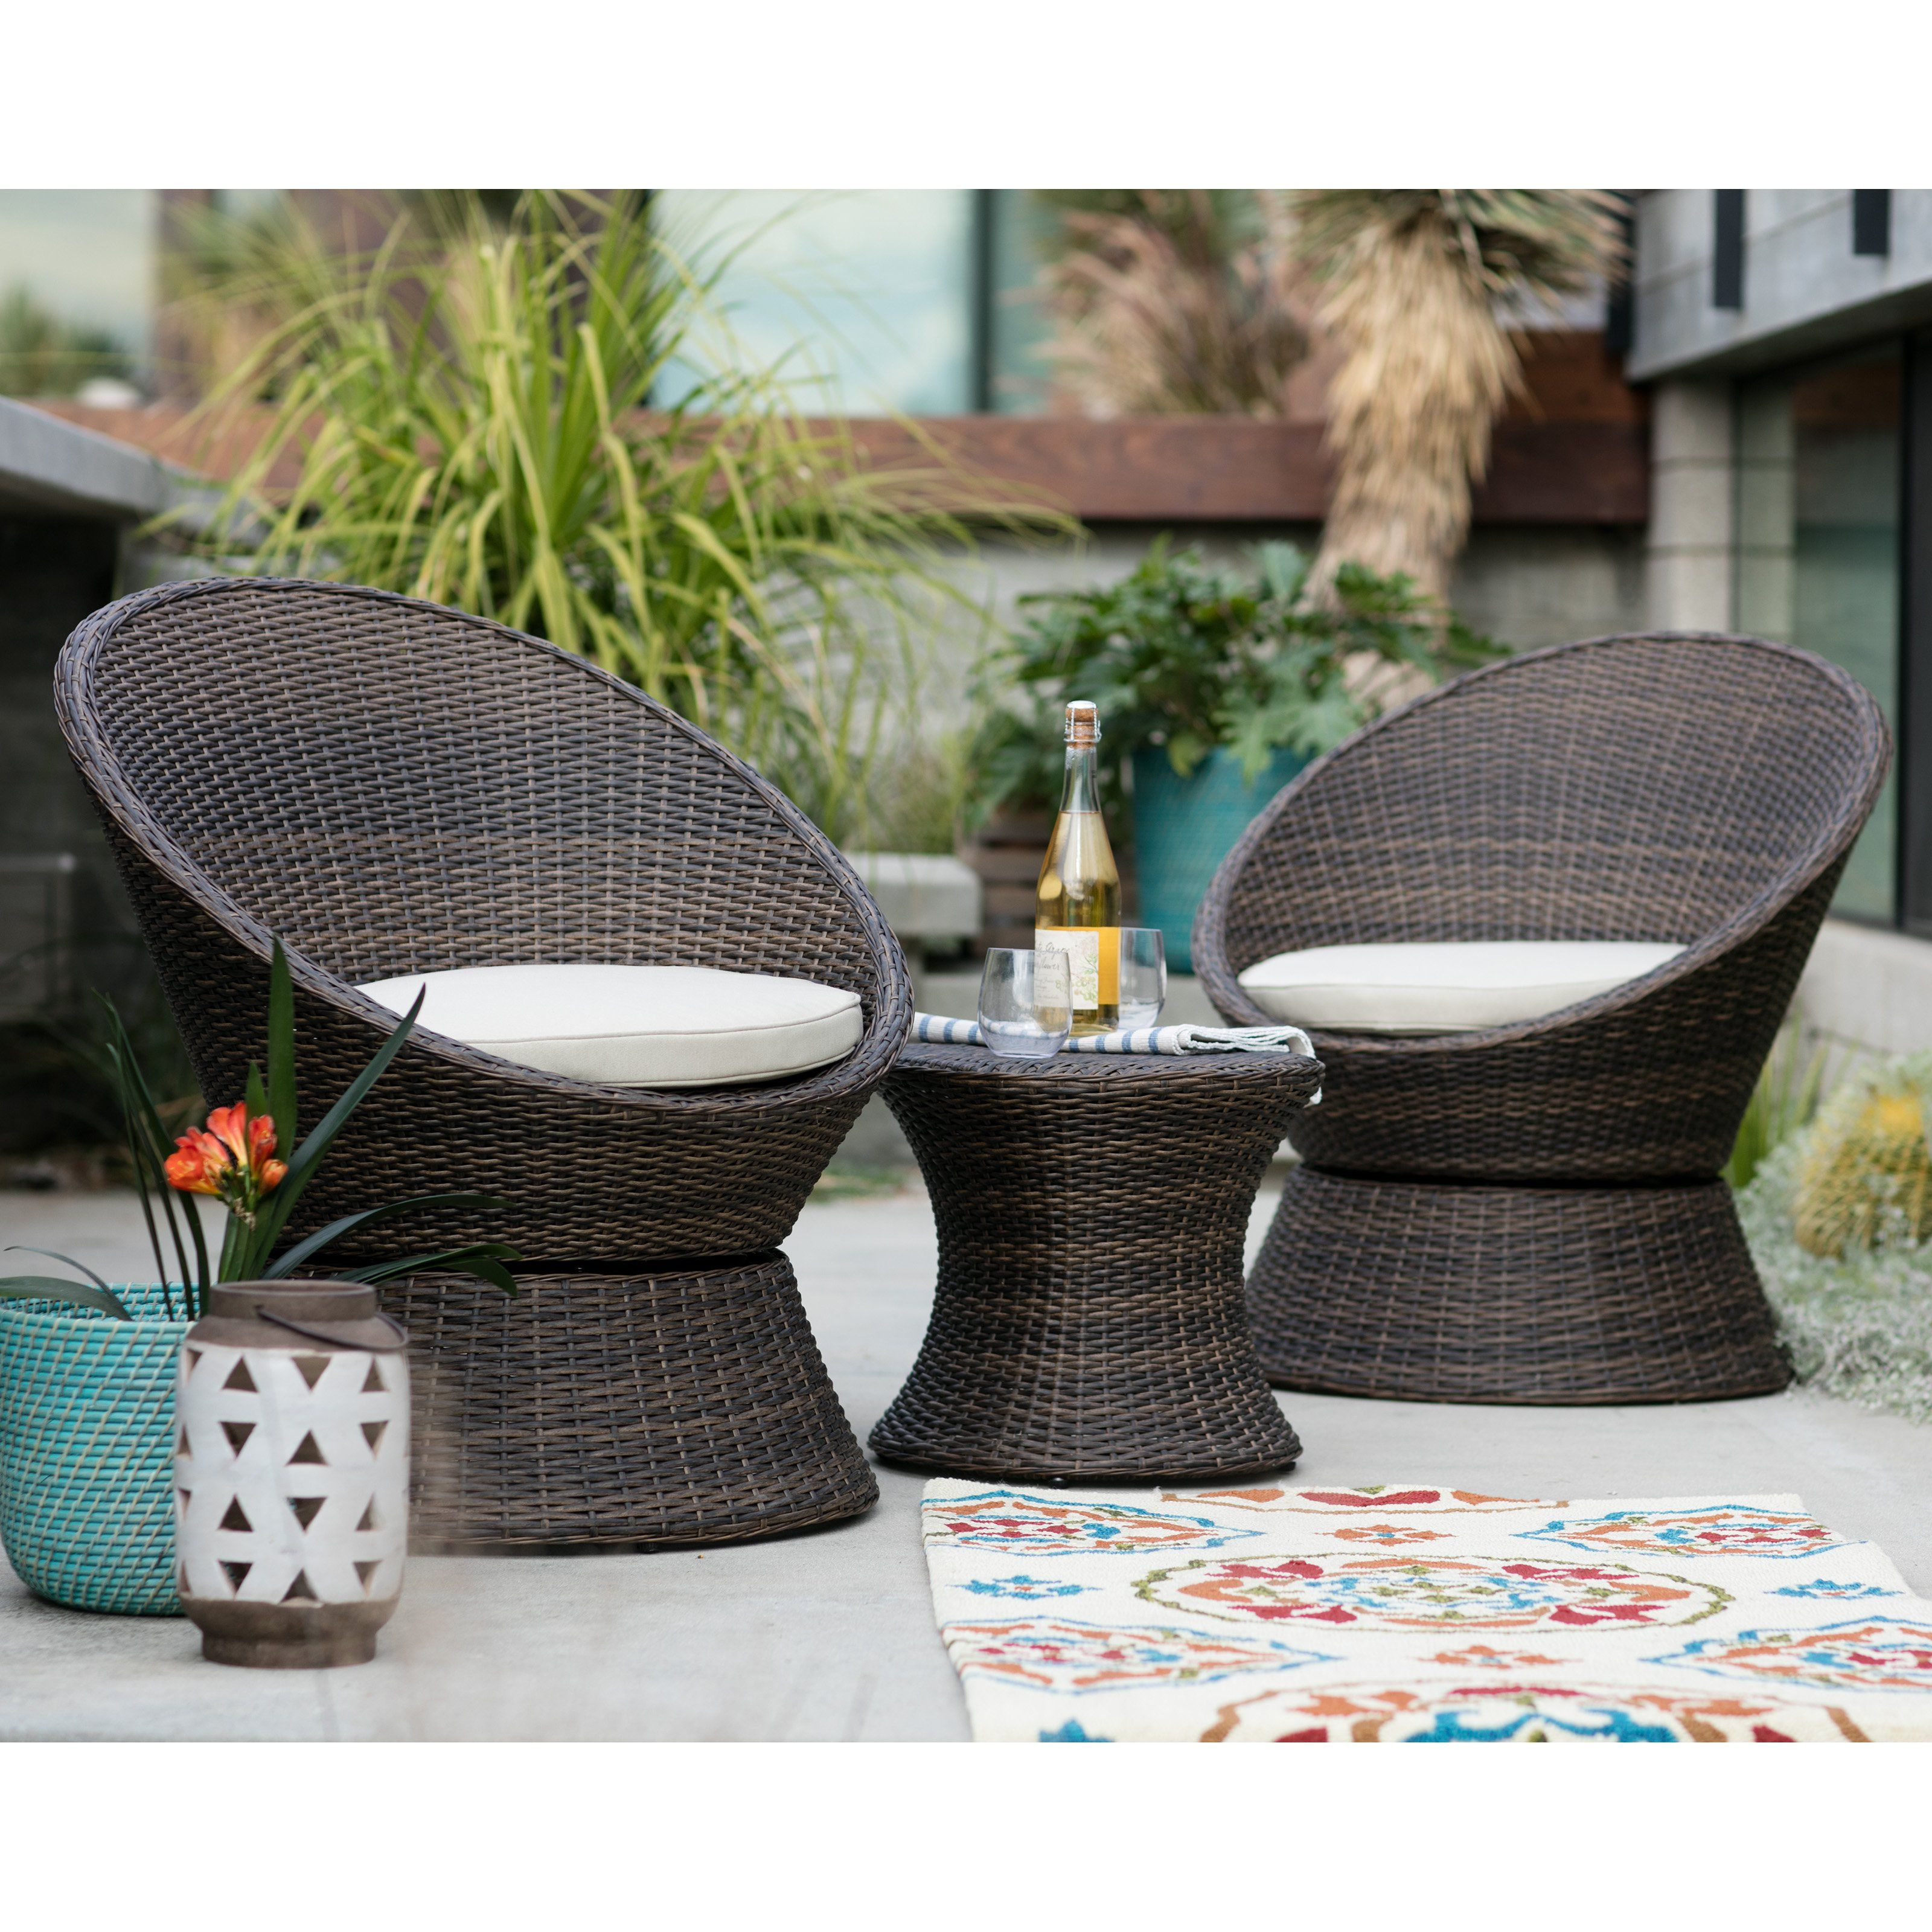 Outdoor Coral Coast Laynee All Weather Wicker 3 Piece Patio Swivel Chairs And Side Table Set Lv Resin Patio Furniture Backyard Furniture Wicker Swivel Chair